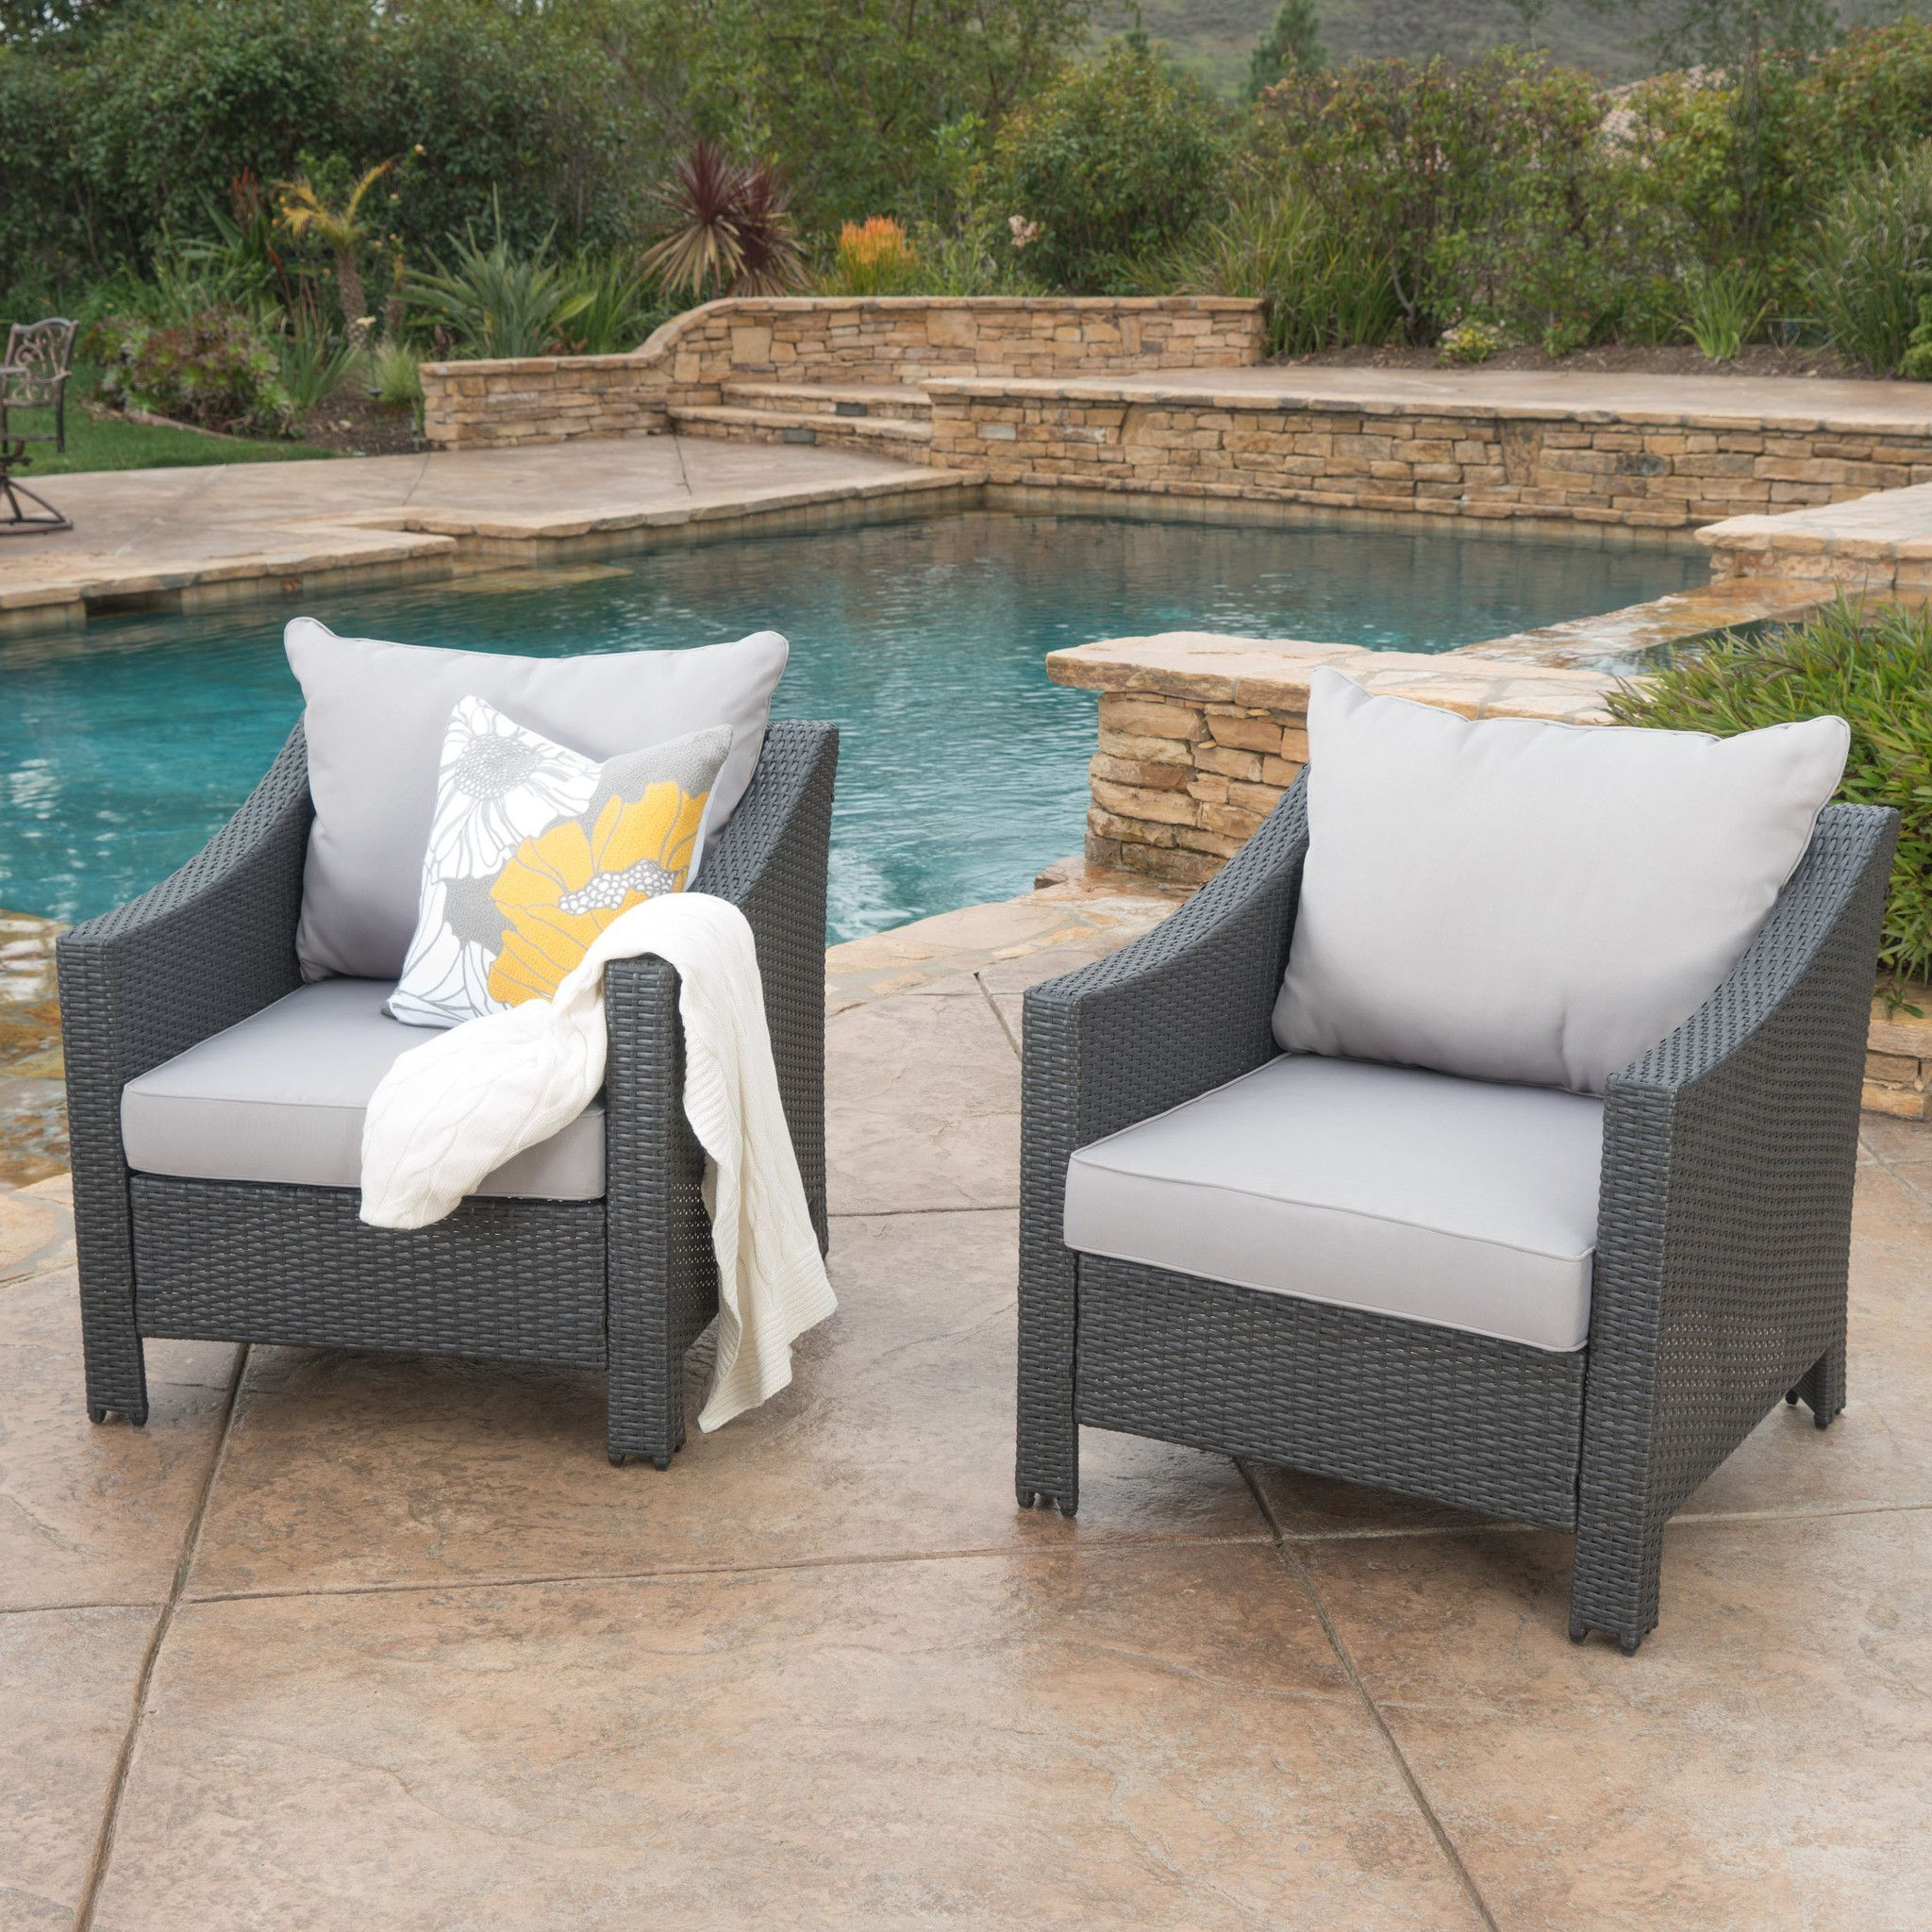 Cortez Outdoor Wicker Club Chair W/ Water Resistant Cushions Throughout Latest Lavina Outdoor Patio Daybeds With Cushions (View 17 of 20)